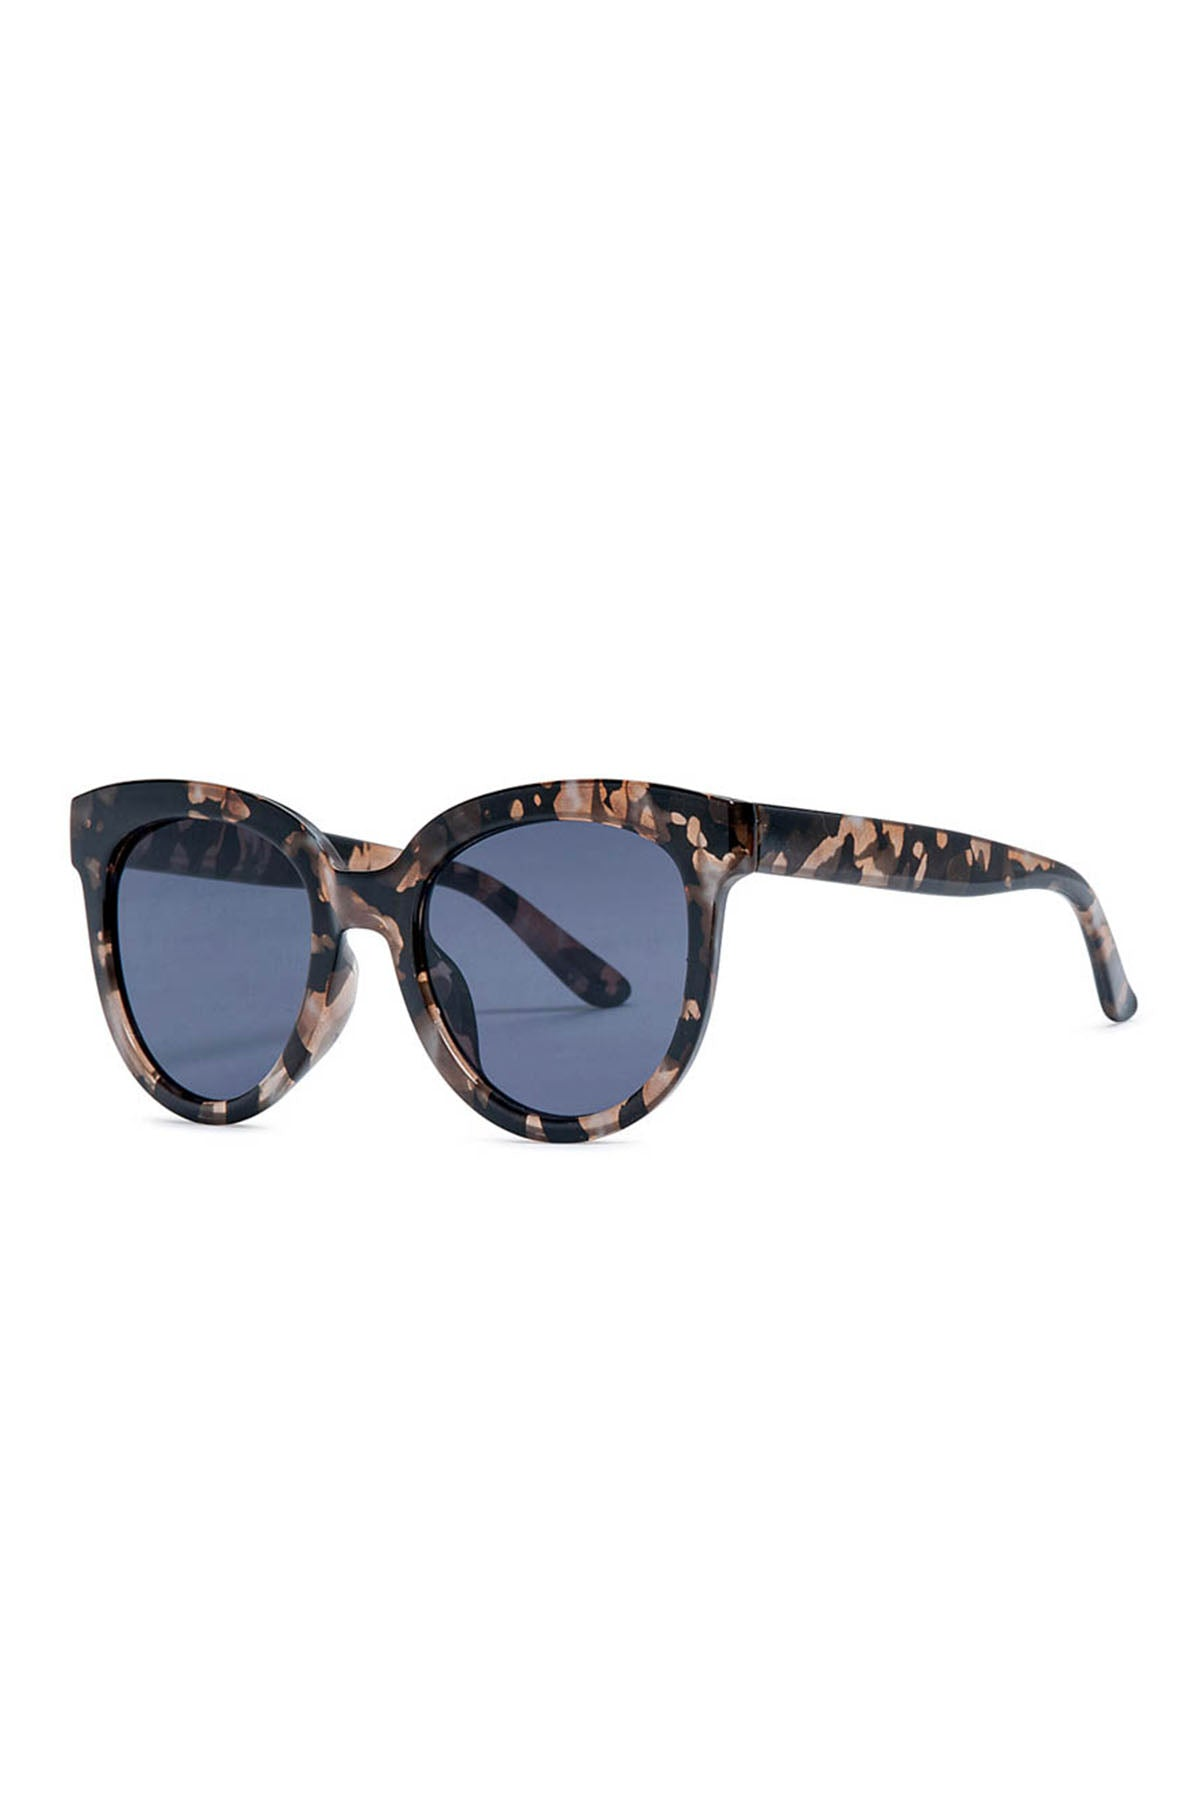 Supersense Tortoiseshell Sunglasses